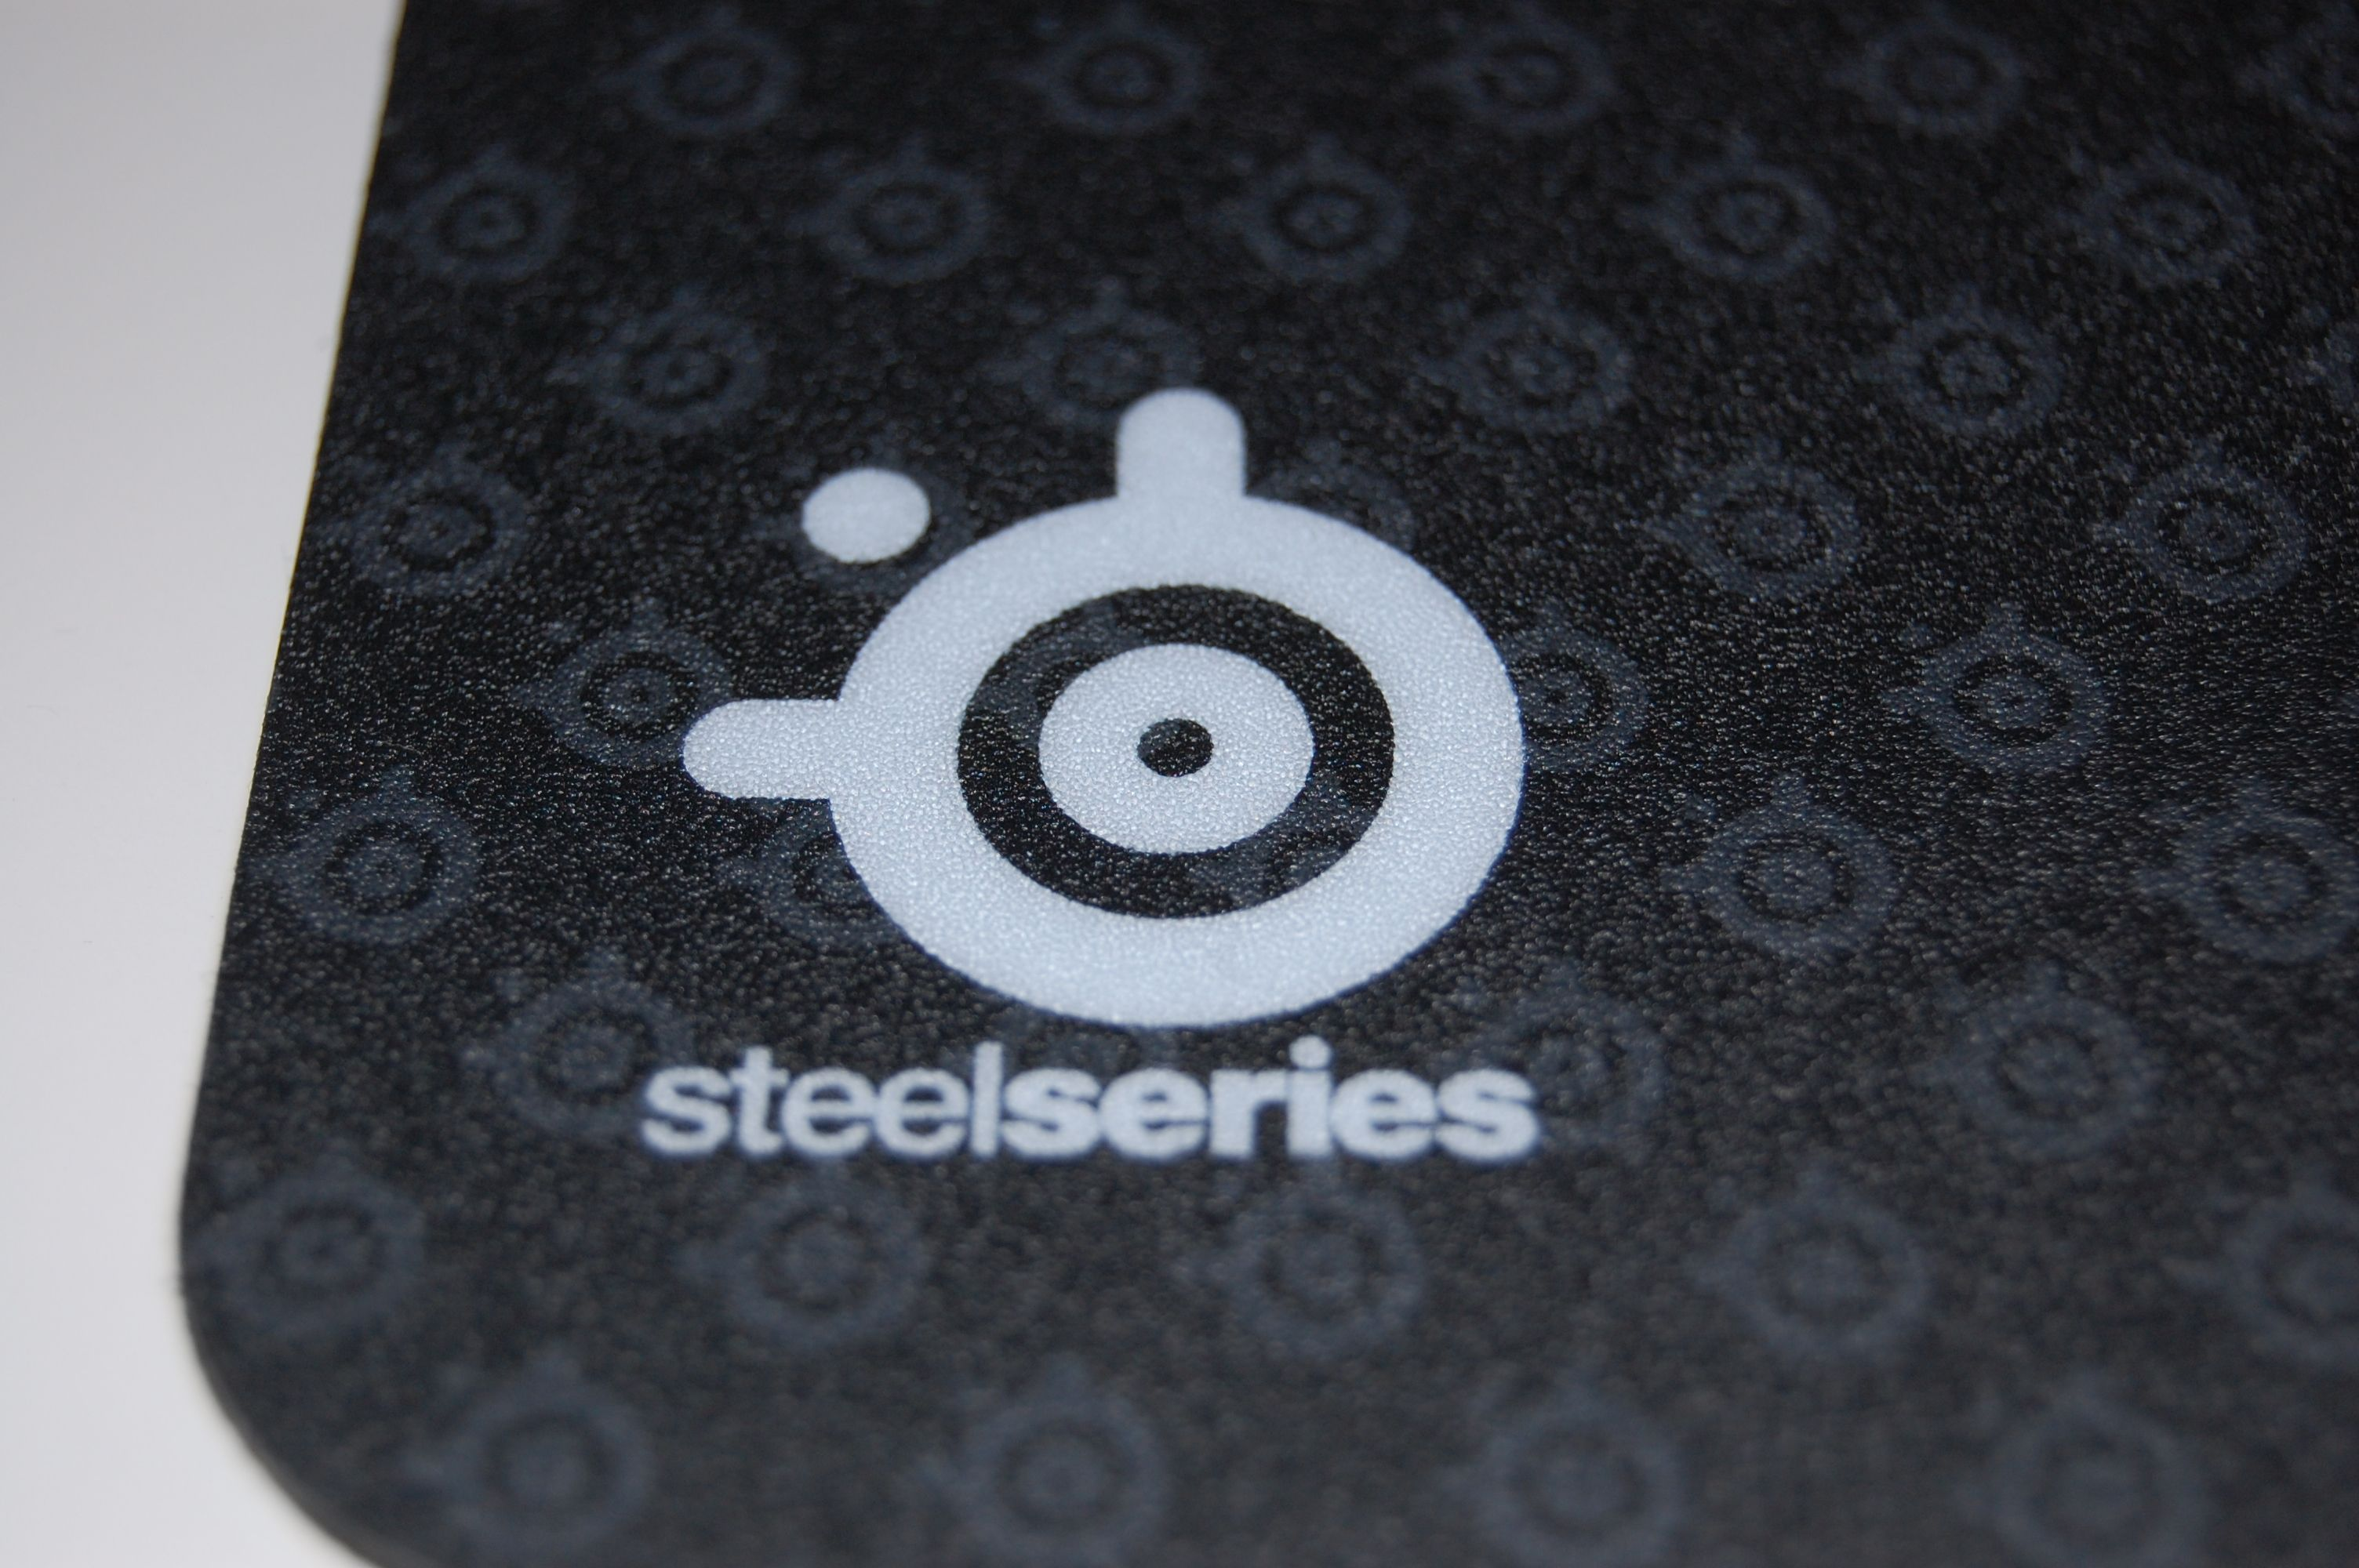 b_0_0_0_00_images_stories_SteelSeries4HD_DSC_0204.JPG